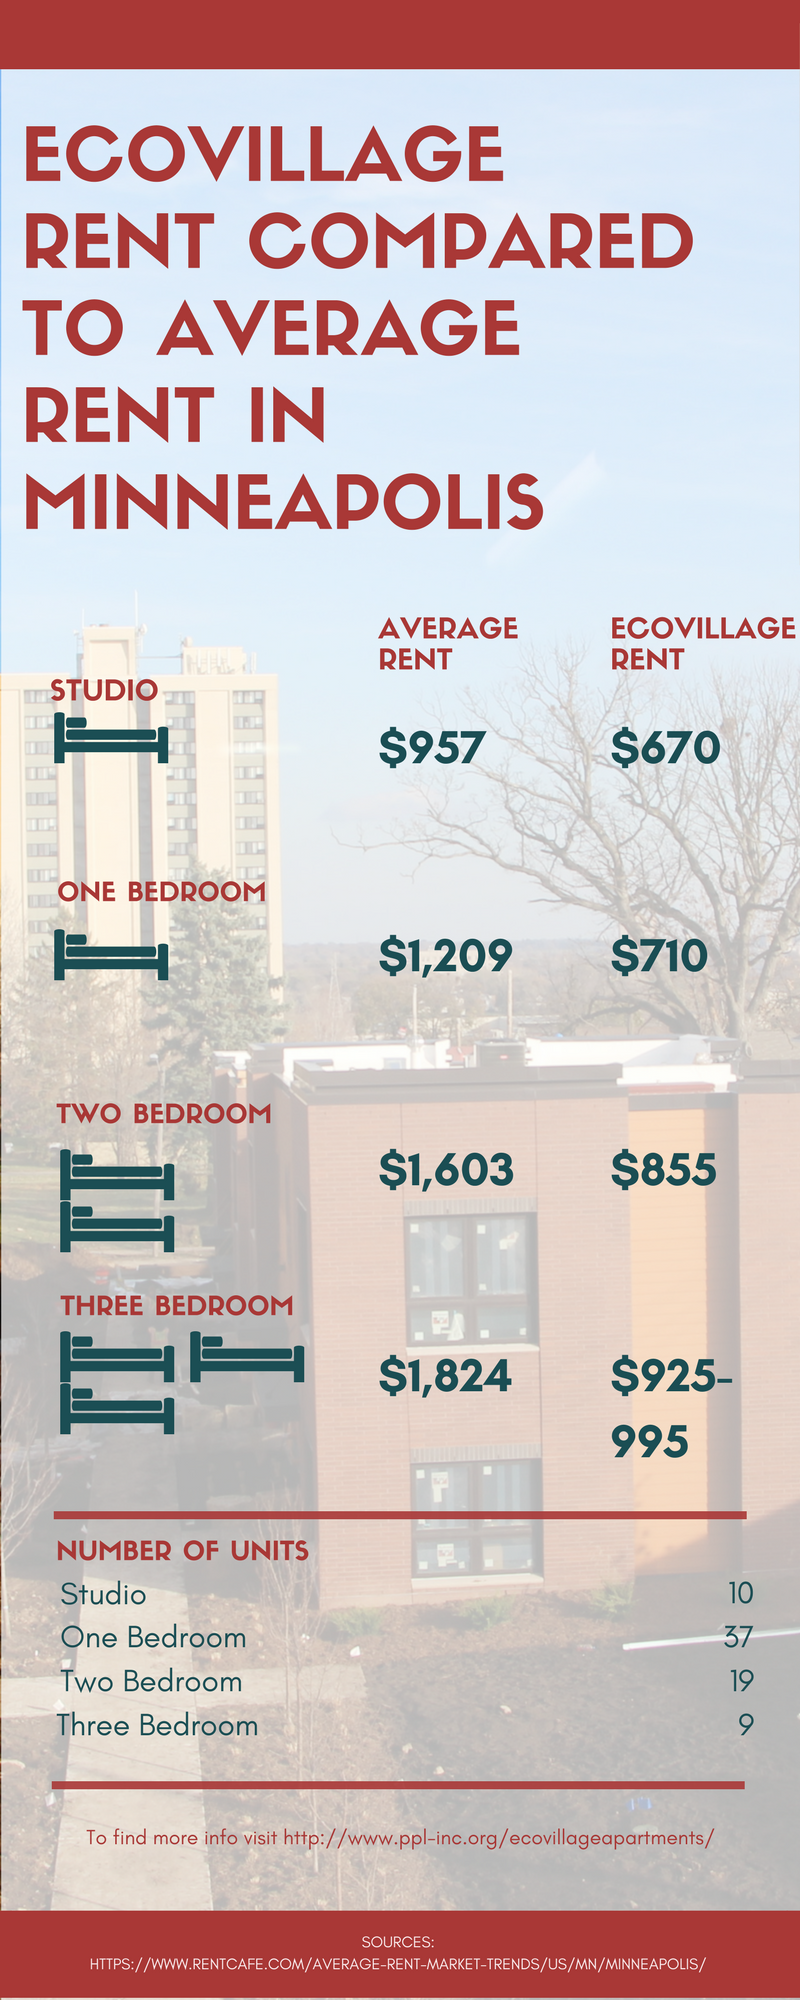 Eco-Village Apartments Rent compared to Average Rent.png